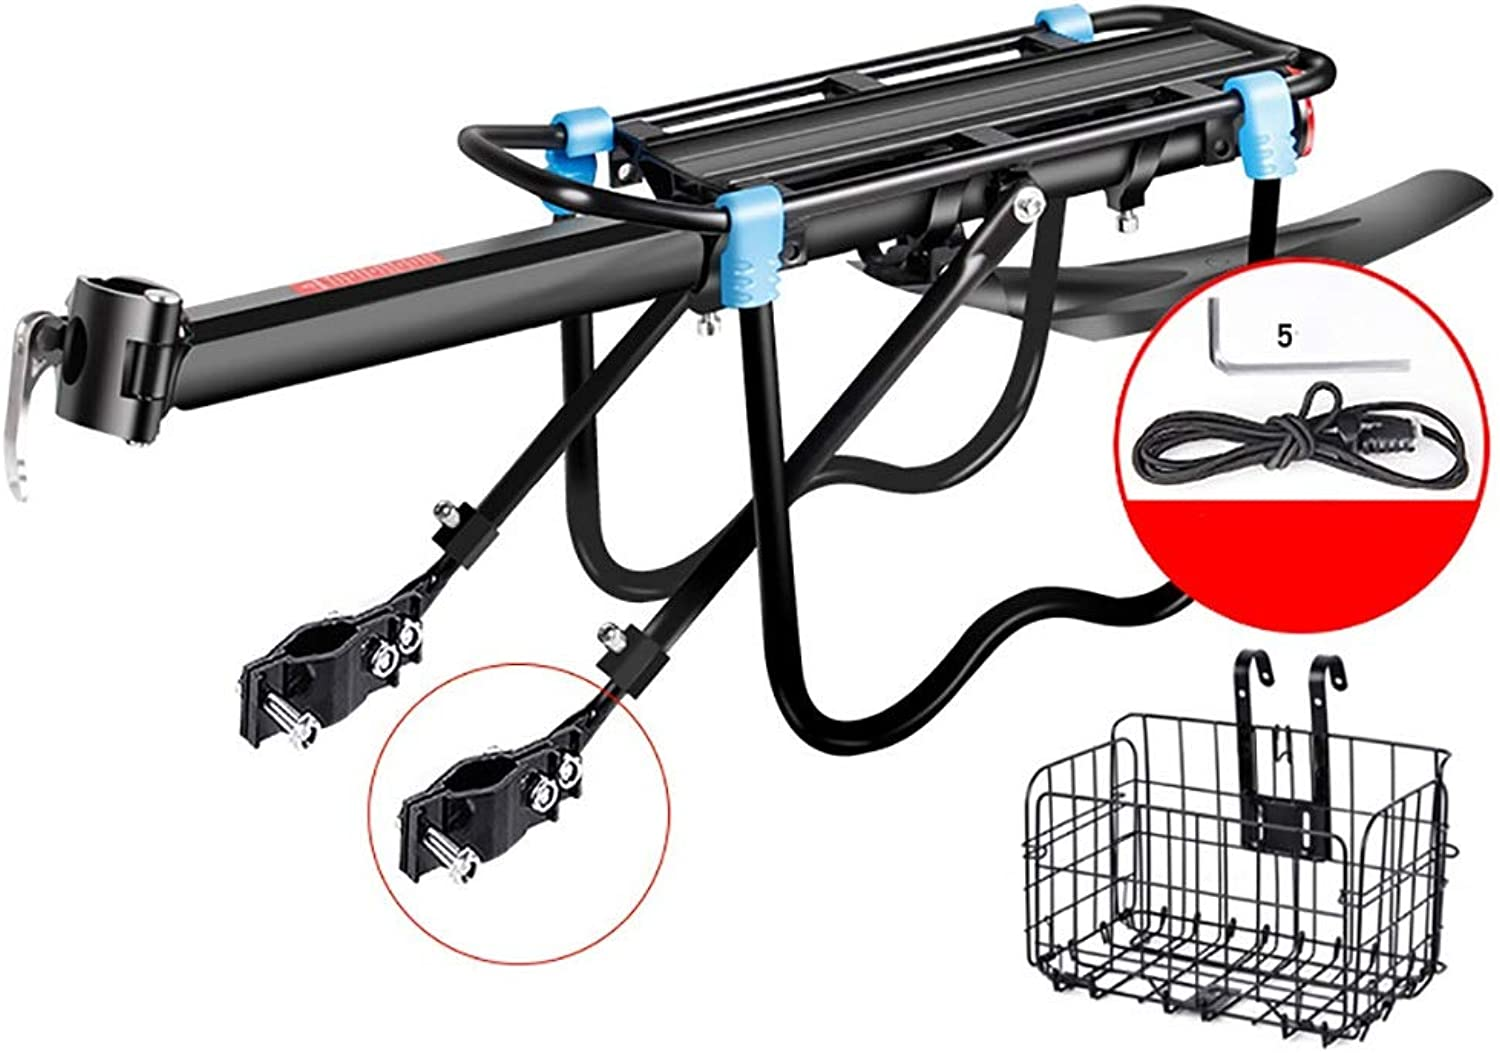 Bike Rack Rear Bike Rack Bicycle Cargo Rack Semi-Fast Release Adjustable Alloy Bicycle Carrier with Fender 165 Lb Capacity Easy to Install Black Bike Frames (Style   A)